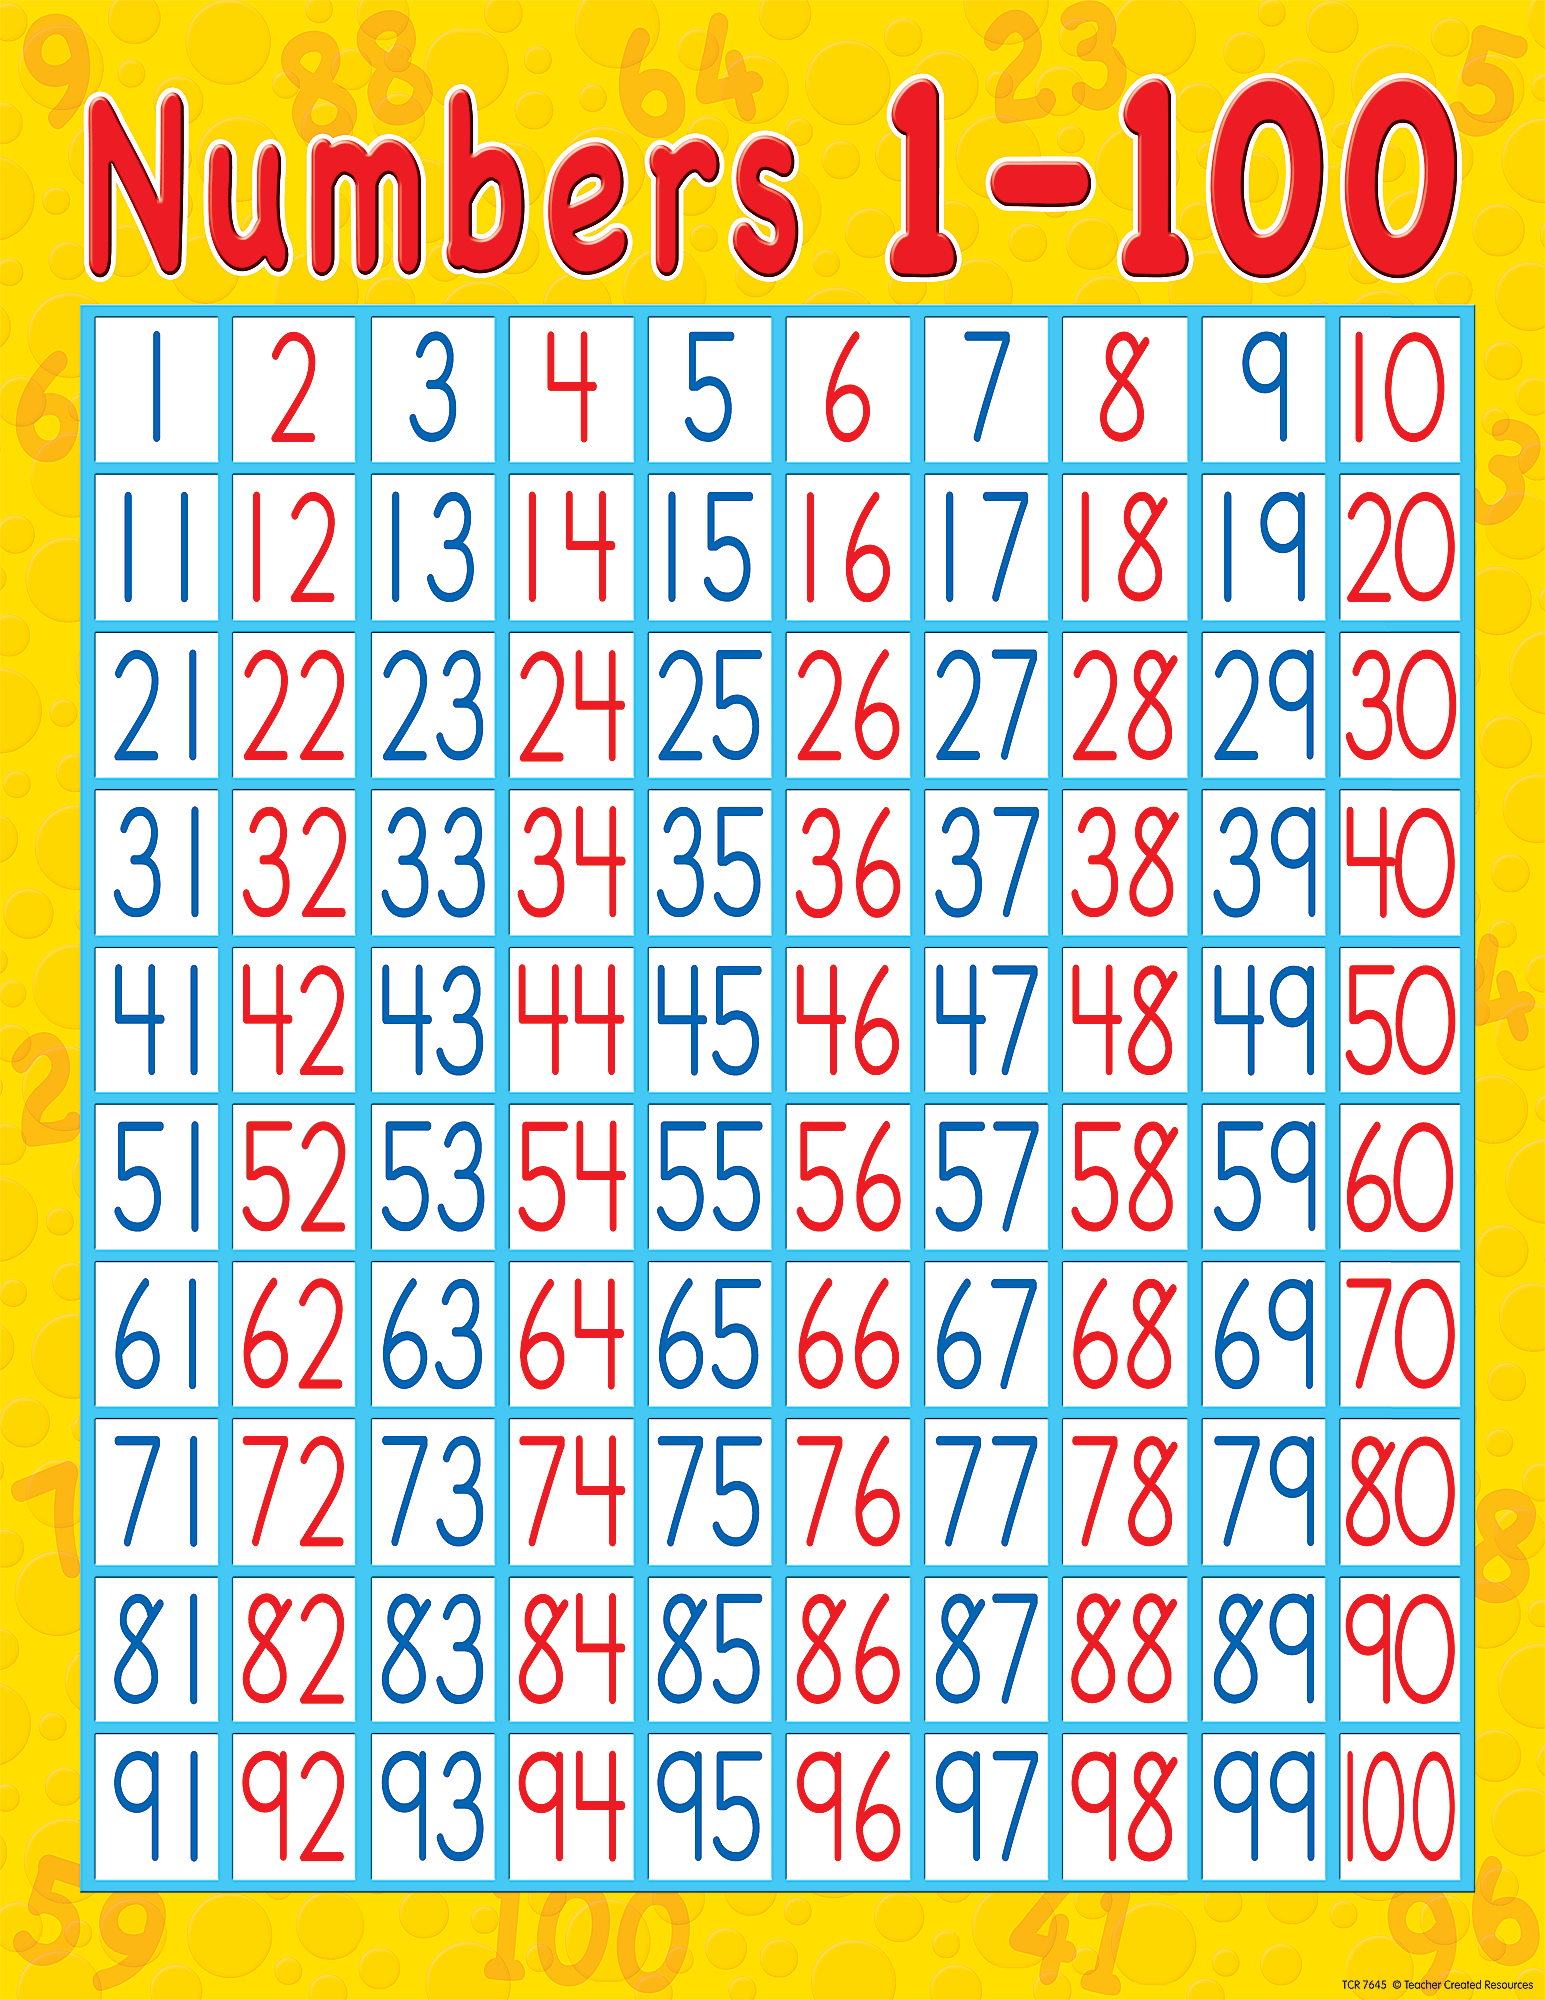 This is an image of Impeccable Printable 100 Number Chart